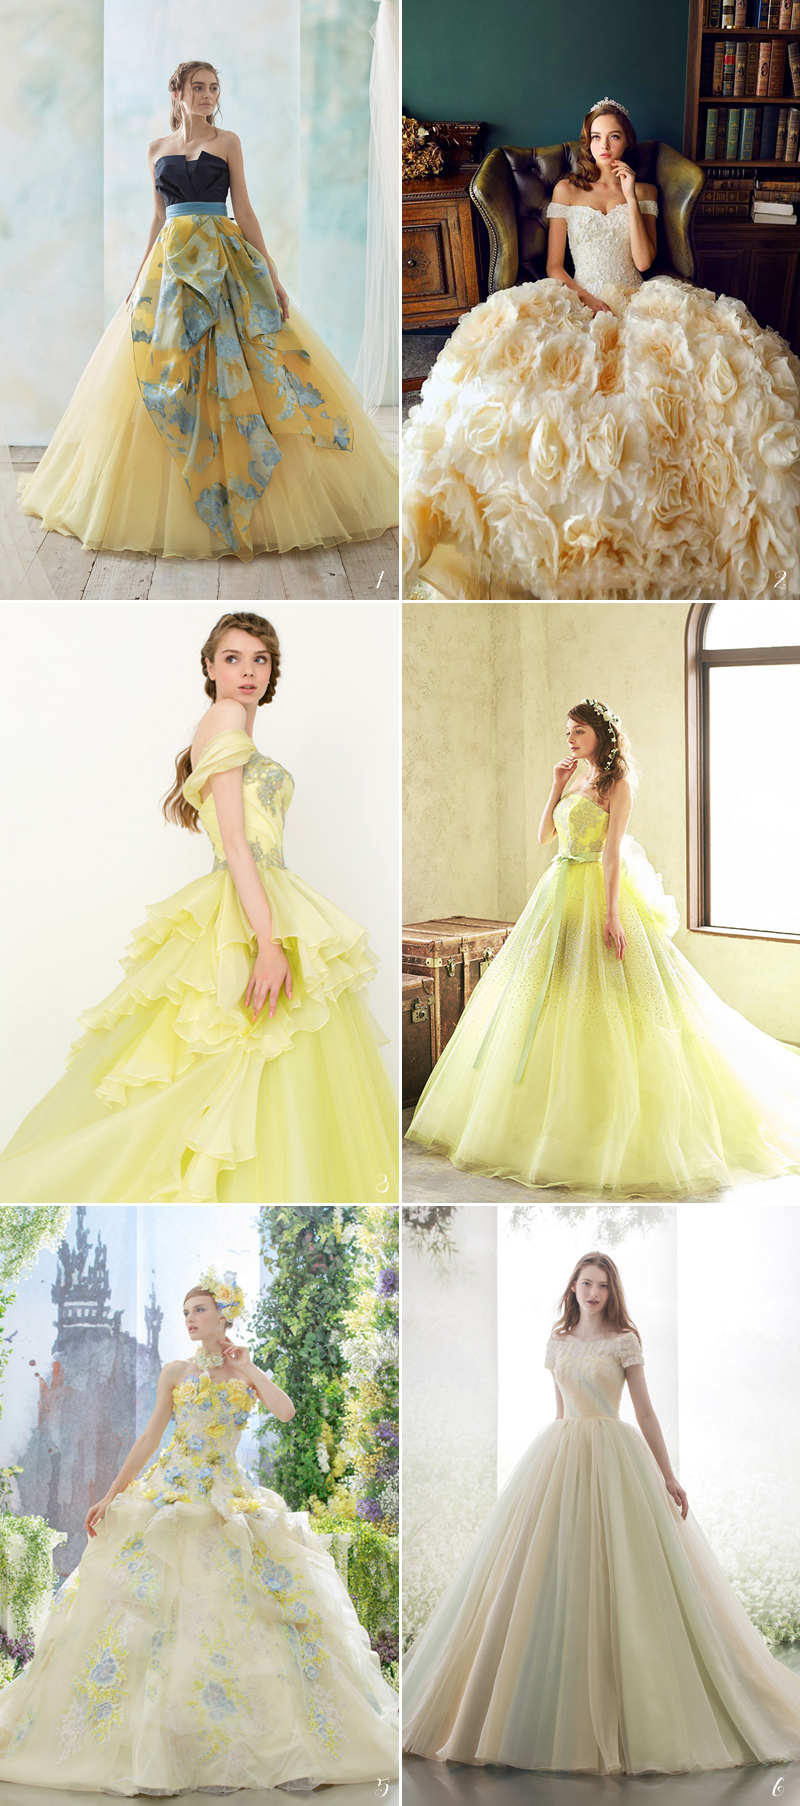 Fairy Tale Wedding Dresses For The Disney Princess Bride! | TickAbout